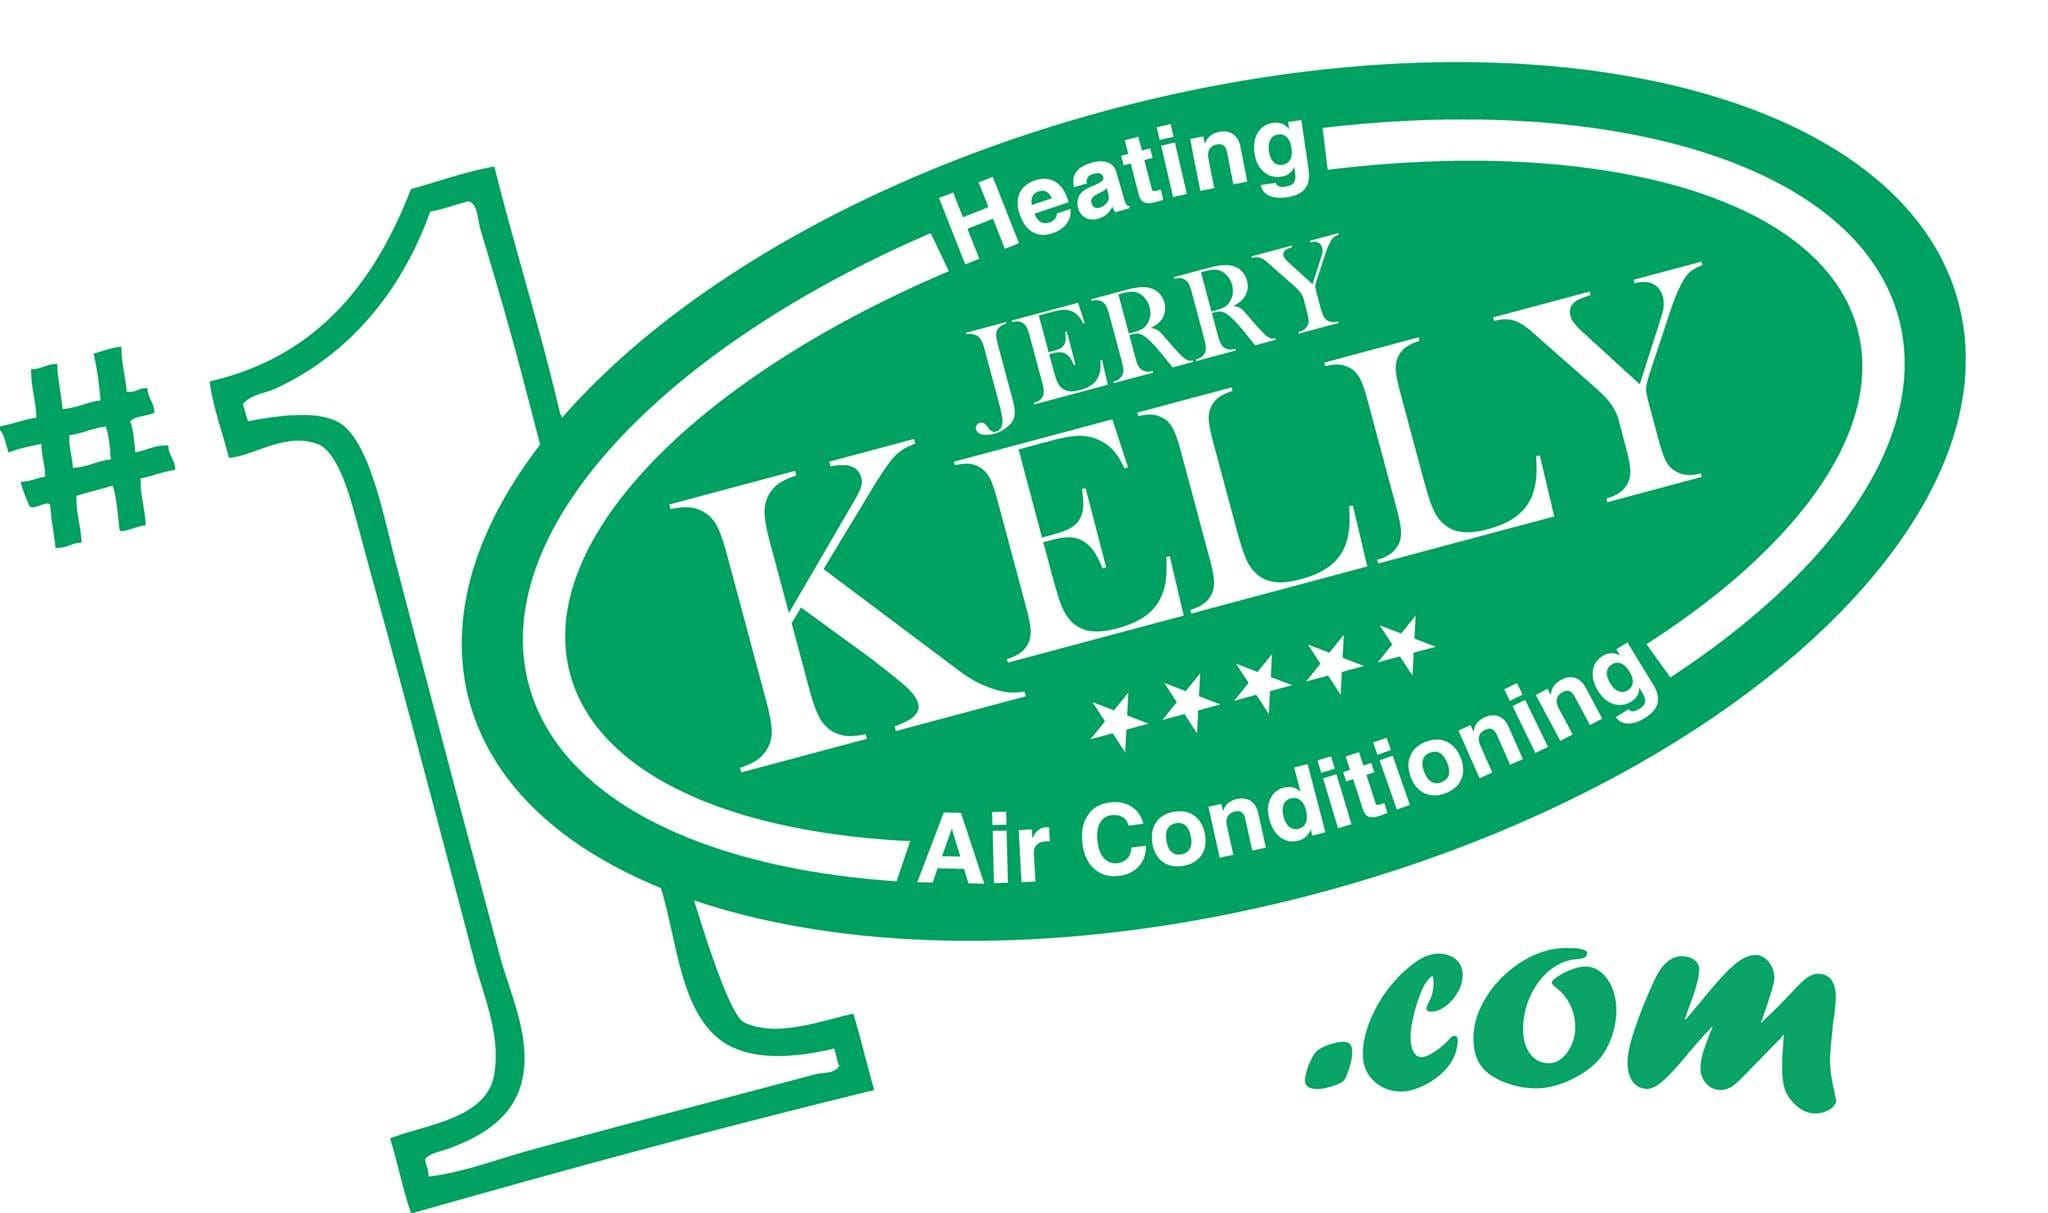 Jerry Kelly heating